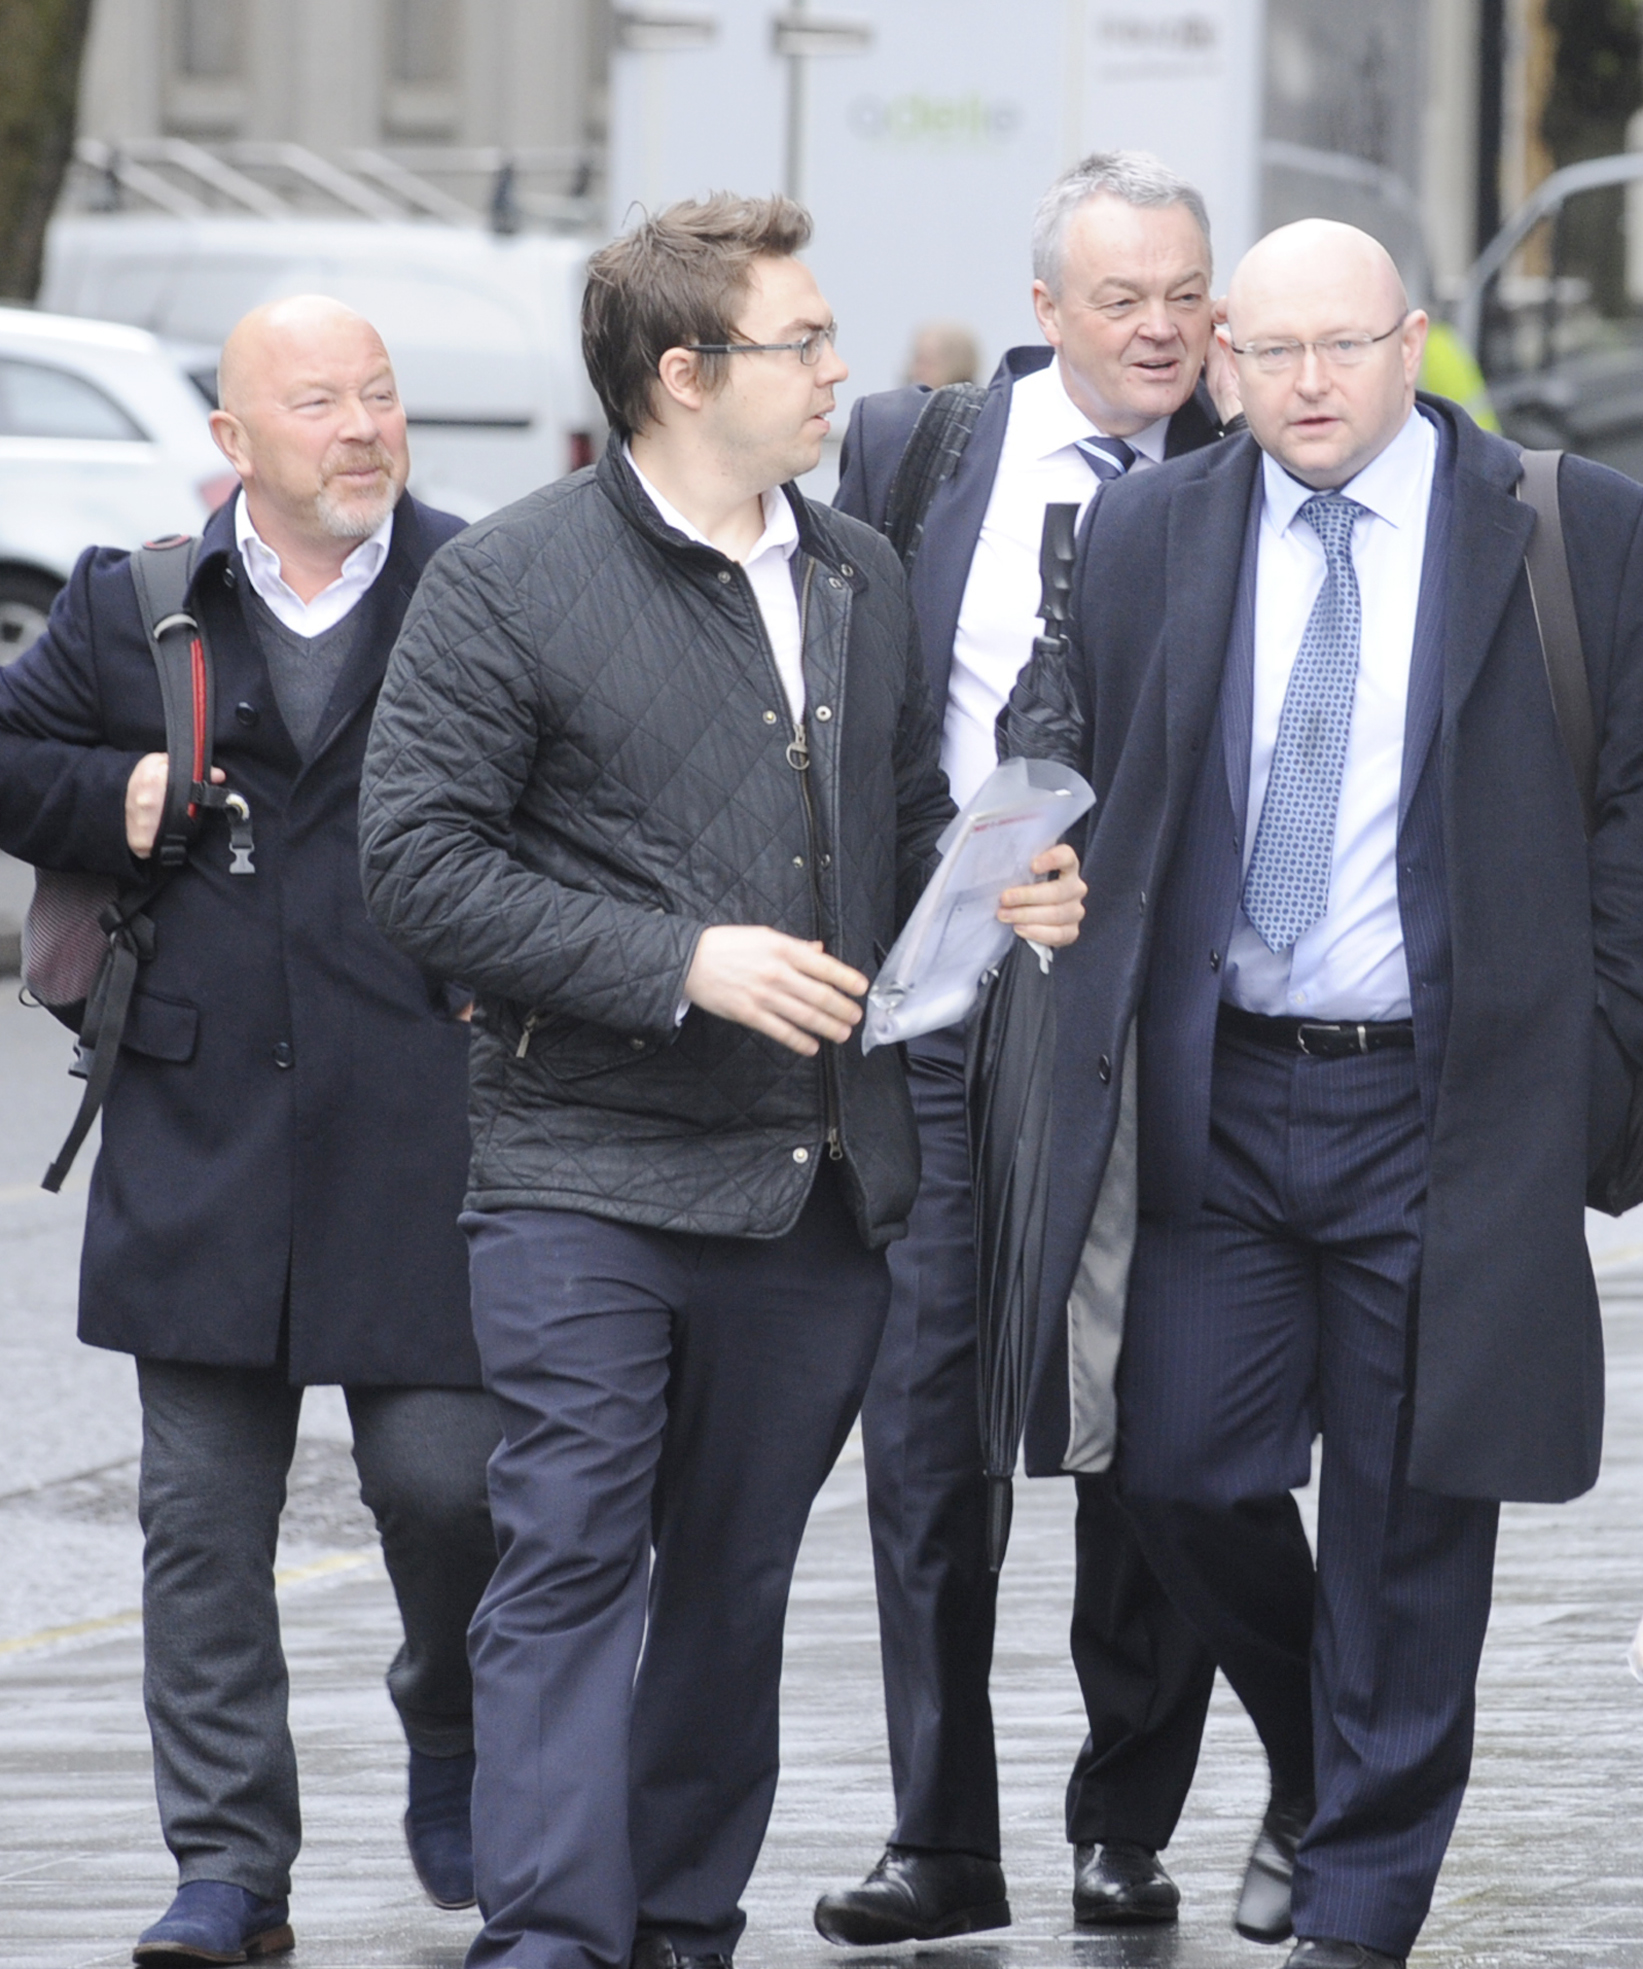 Frank McParland, left, and Phil Gartside, second from right, among a group of men arriving at court